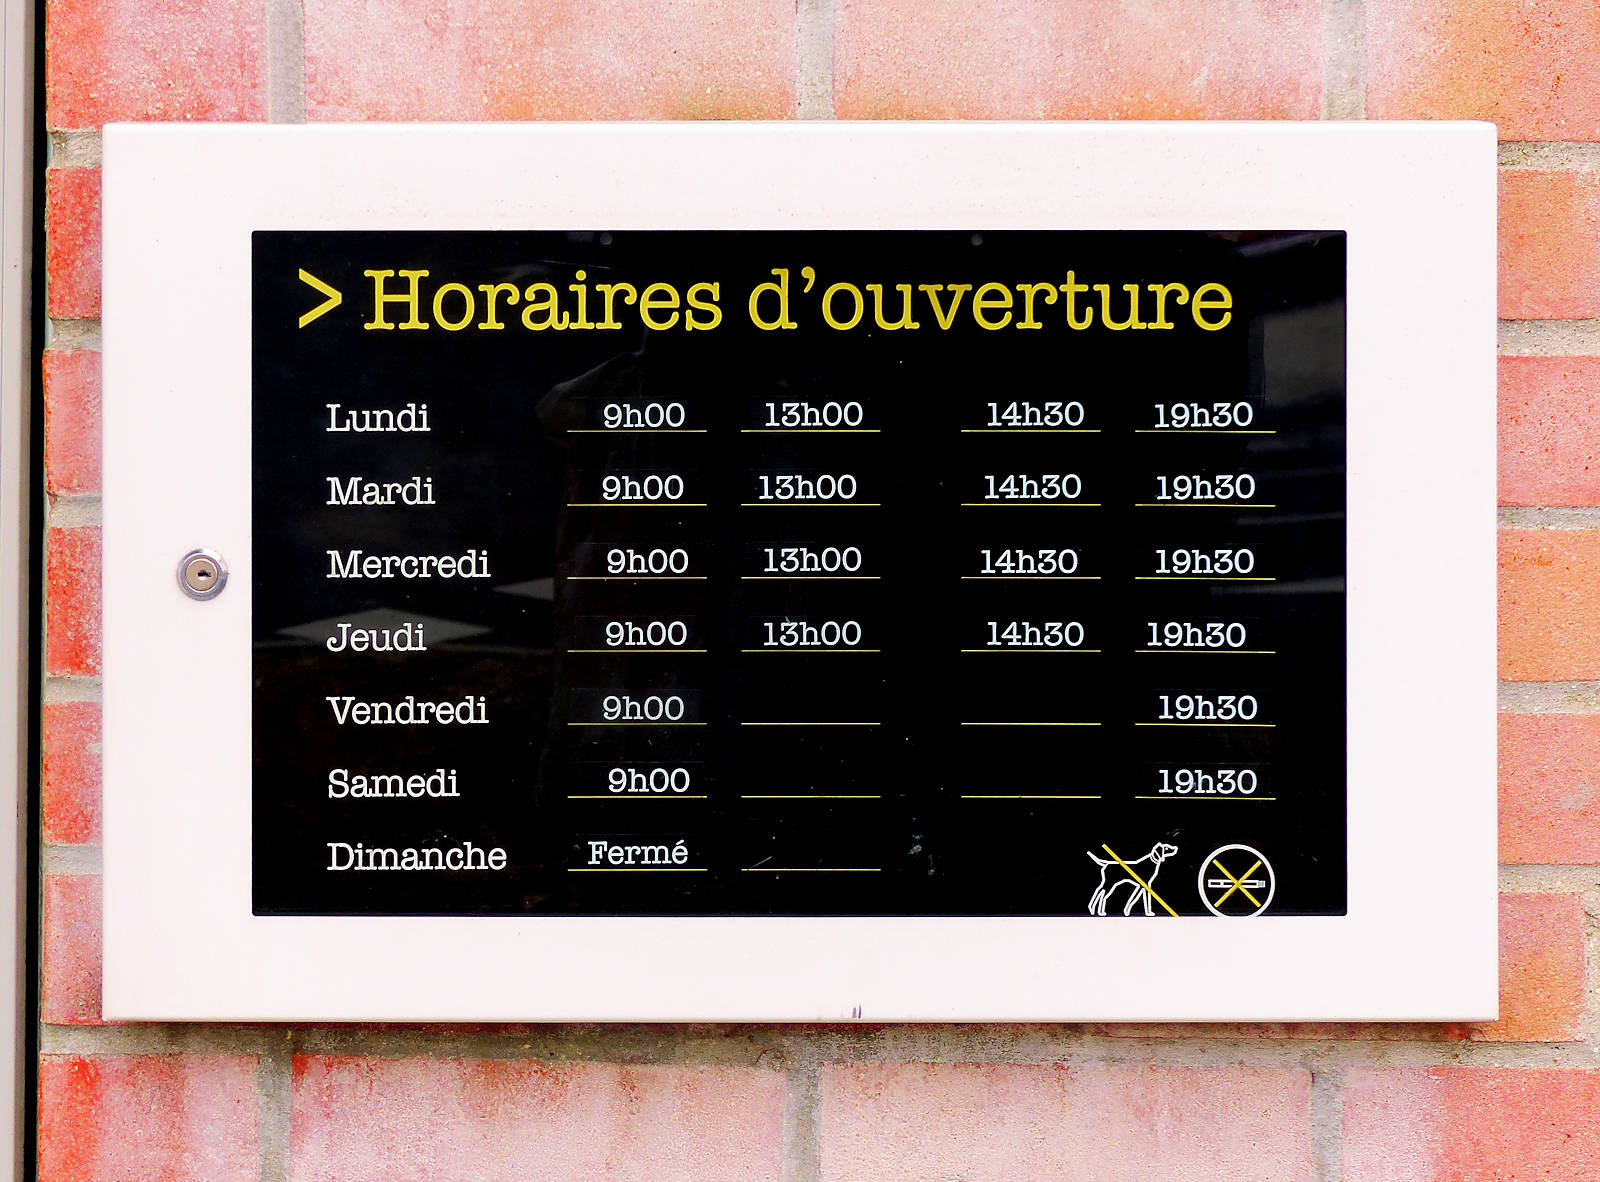 Horaires d'ouverture - Picard Tourcoing